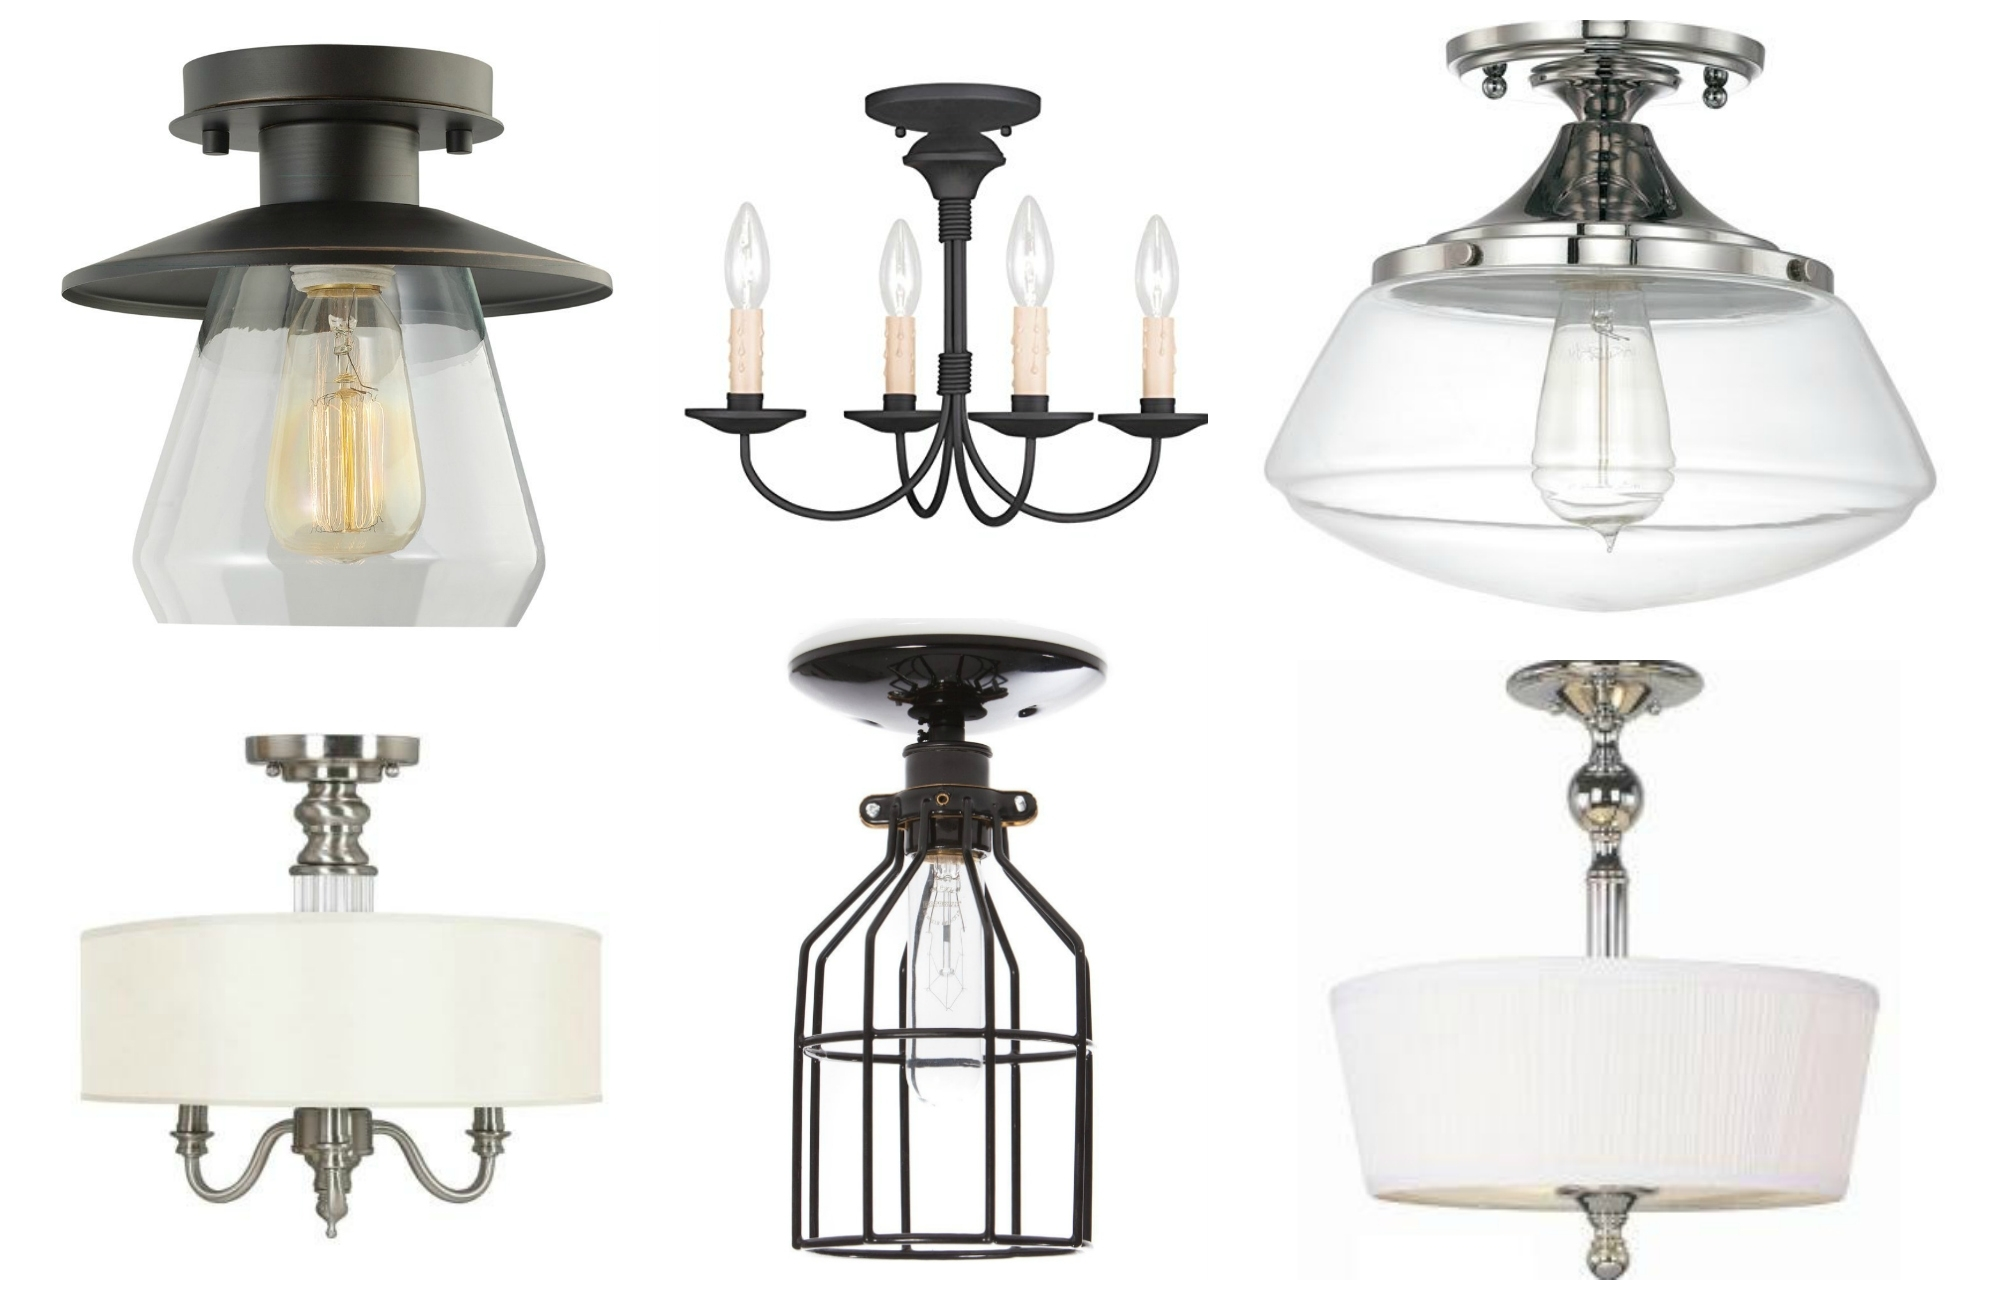 Current Small Chandeliers For Low Ceilings Pertaining To These Gorgeous High Style Ceiling Lights Will Dress Up A Low Ceiling (View 6 of 20)